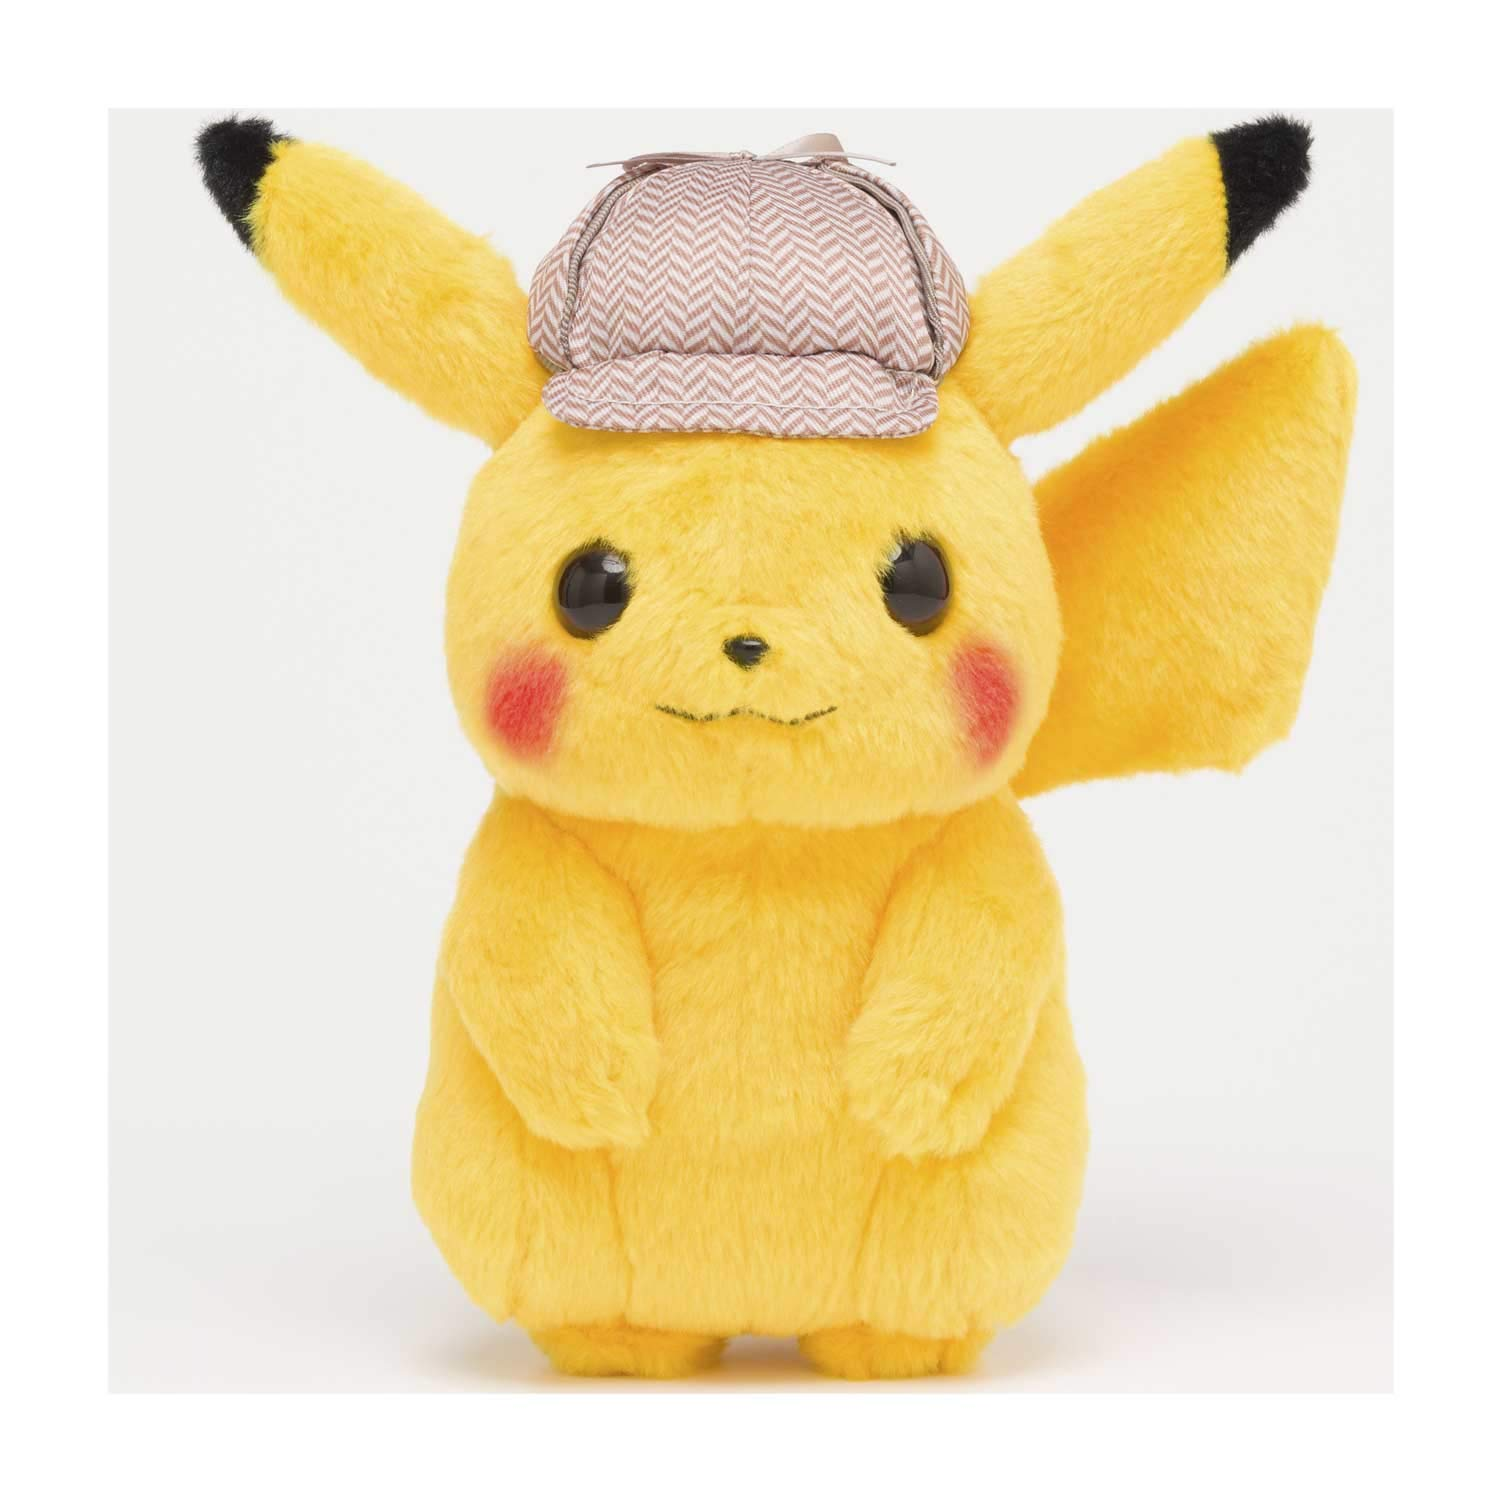 Pokémon Center: Detective Pikachu Poké Plush, 8 Inch by Pokemon